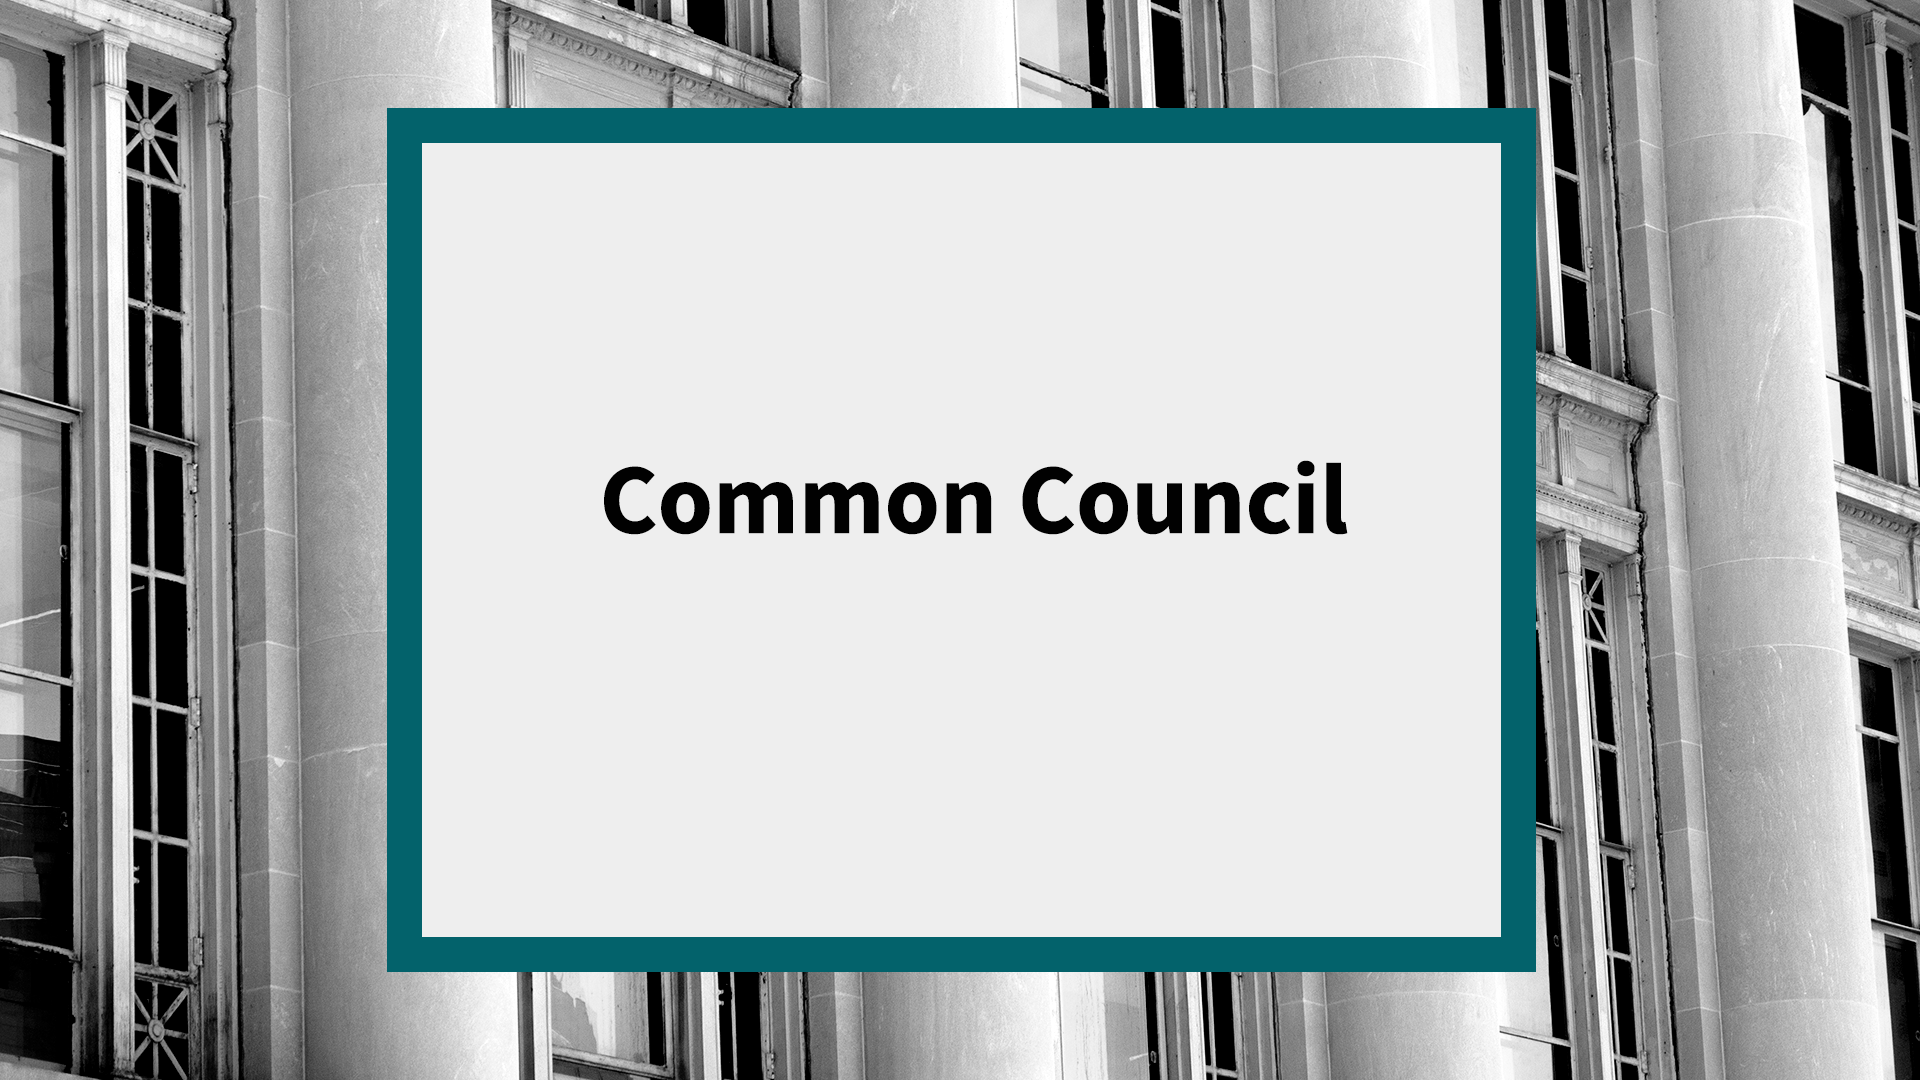 Common Council